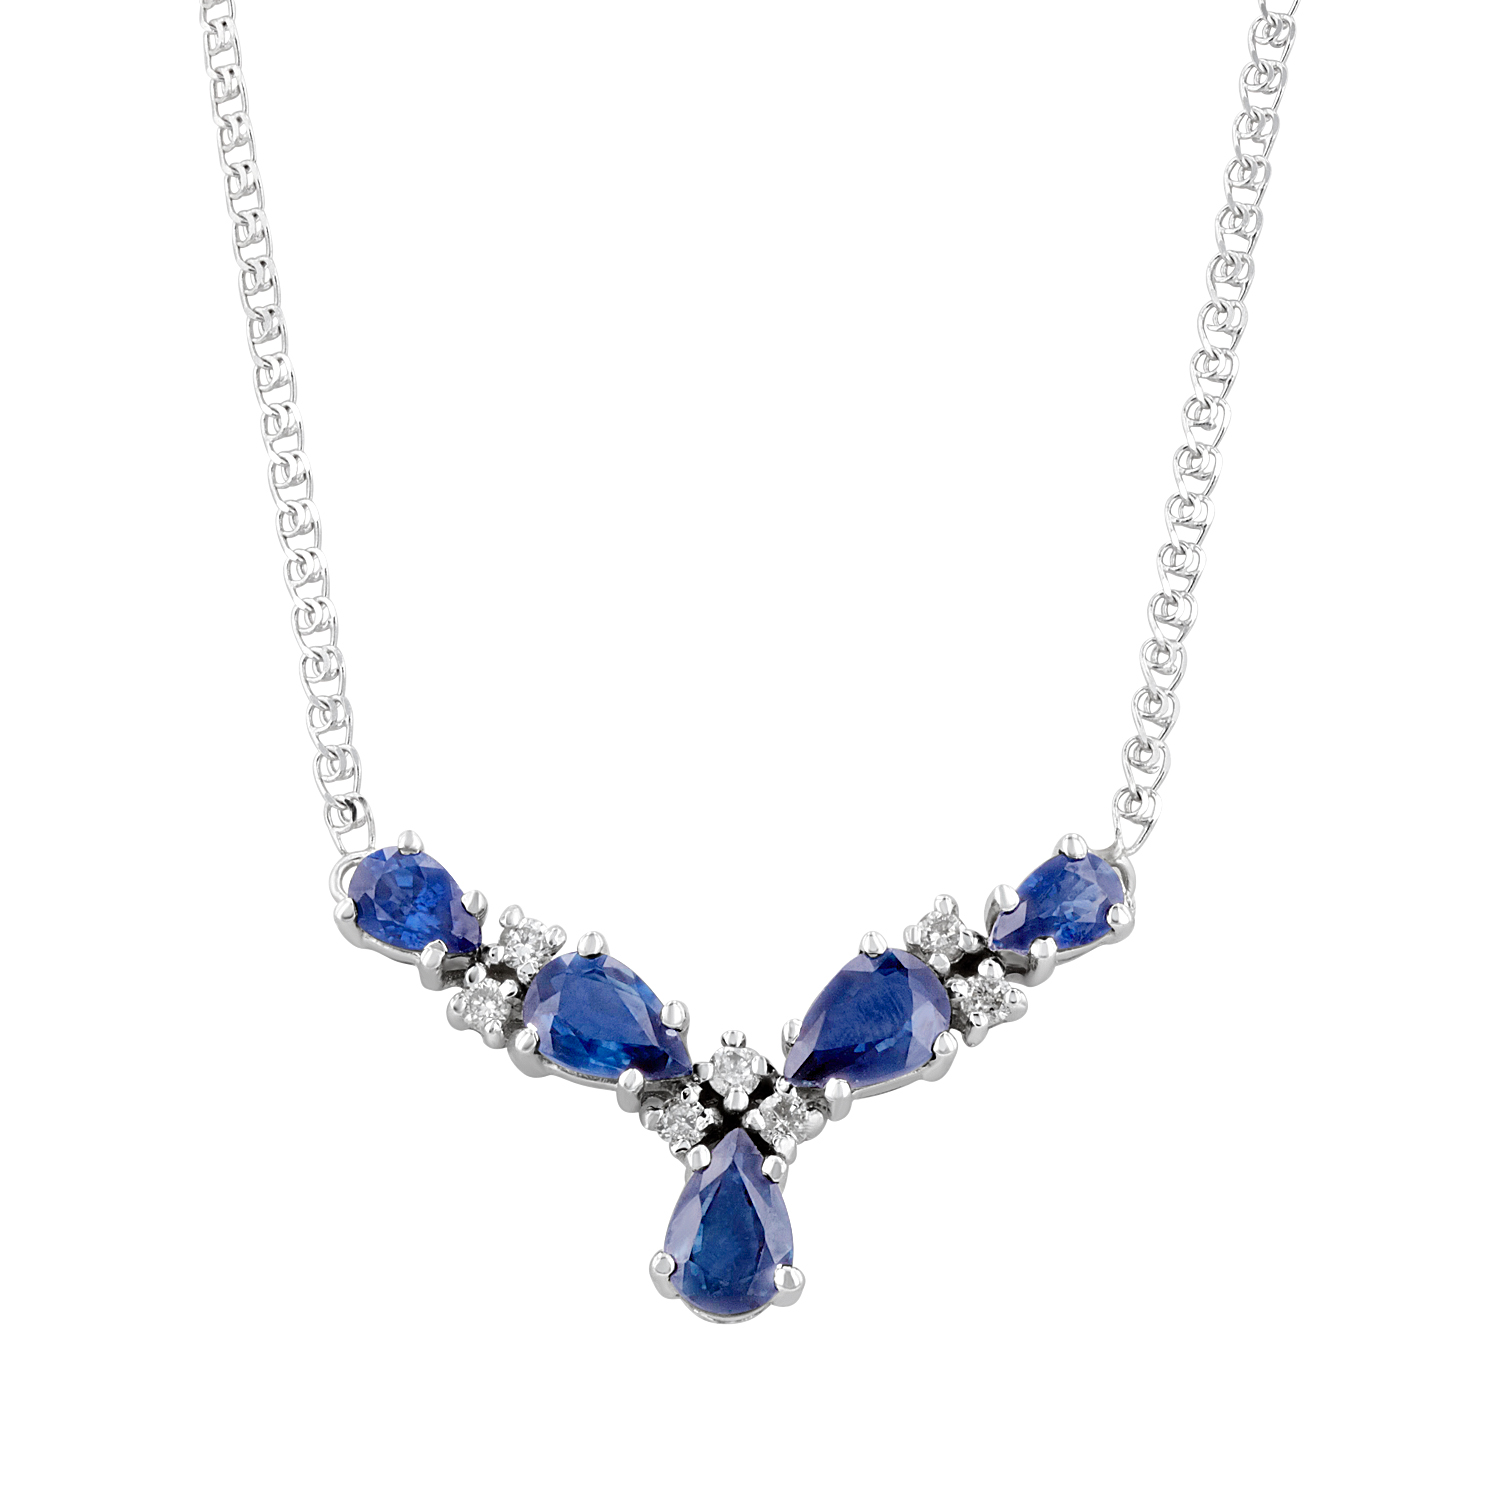 View 1.94ctw Diamond and Sapphire Necklace in 14k White Gold